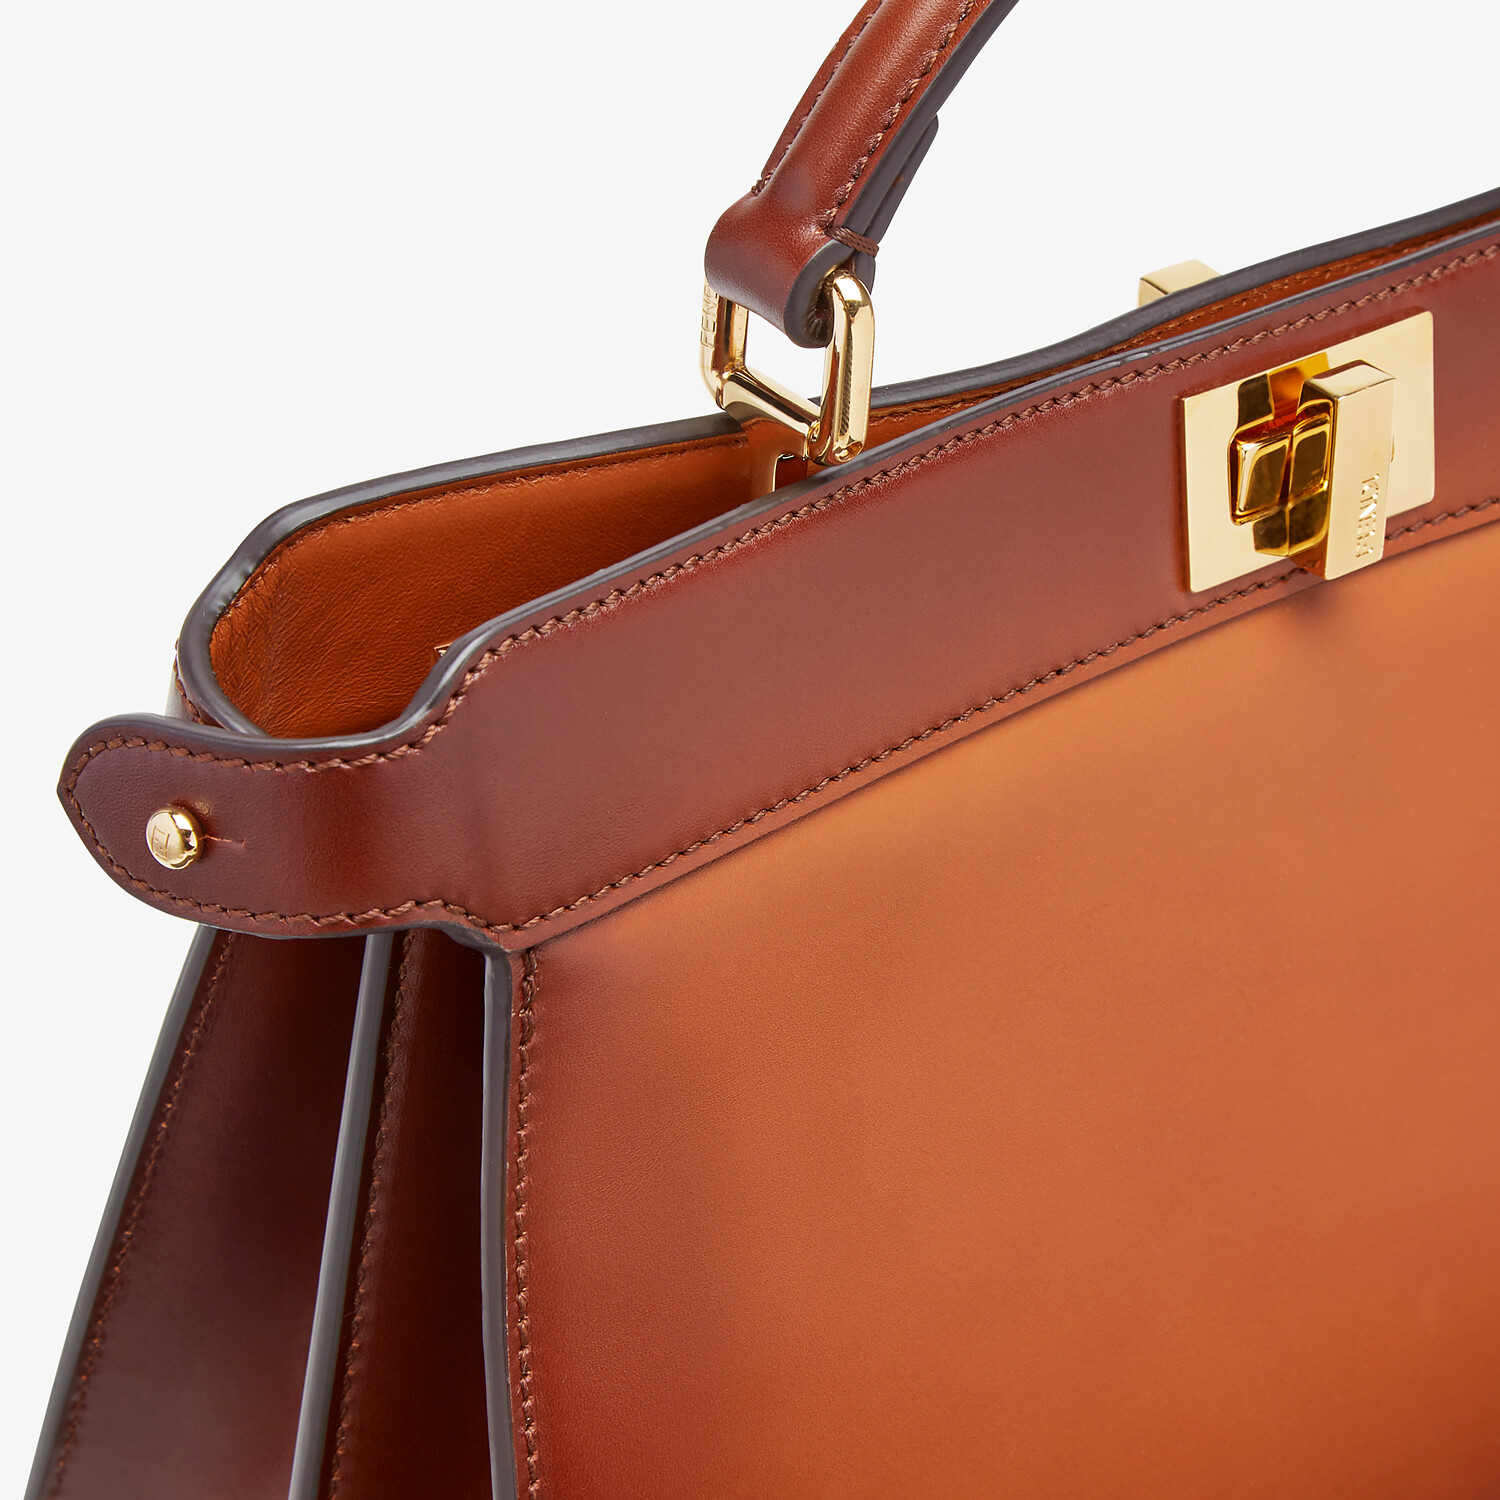 FENDI PEEKABOO ISEEU EAST-WEST - Brown leather bag - view 6 detail